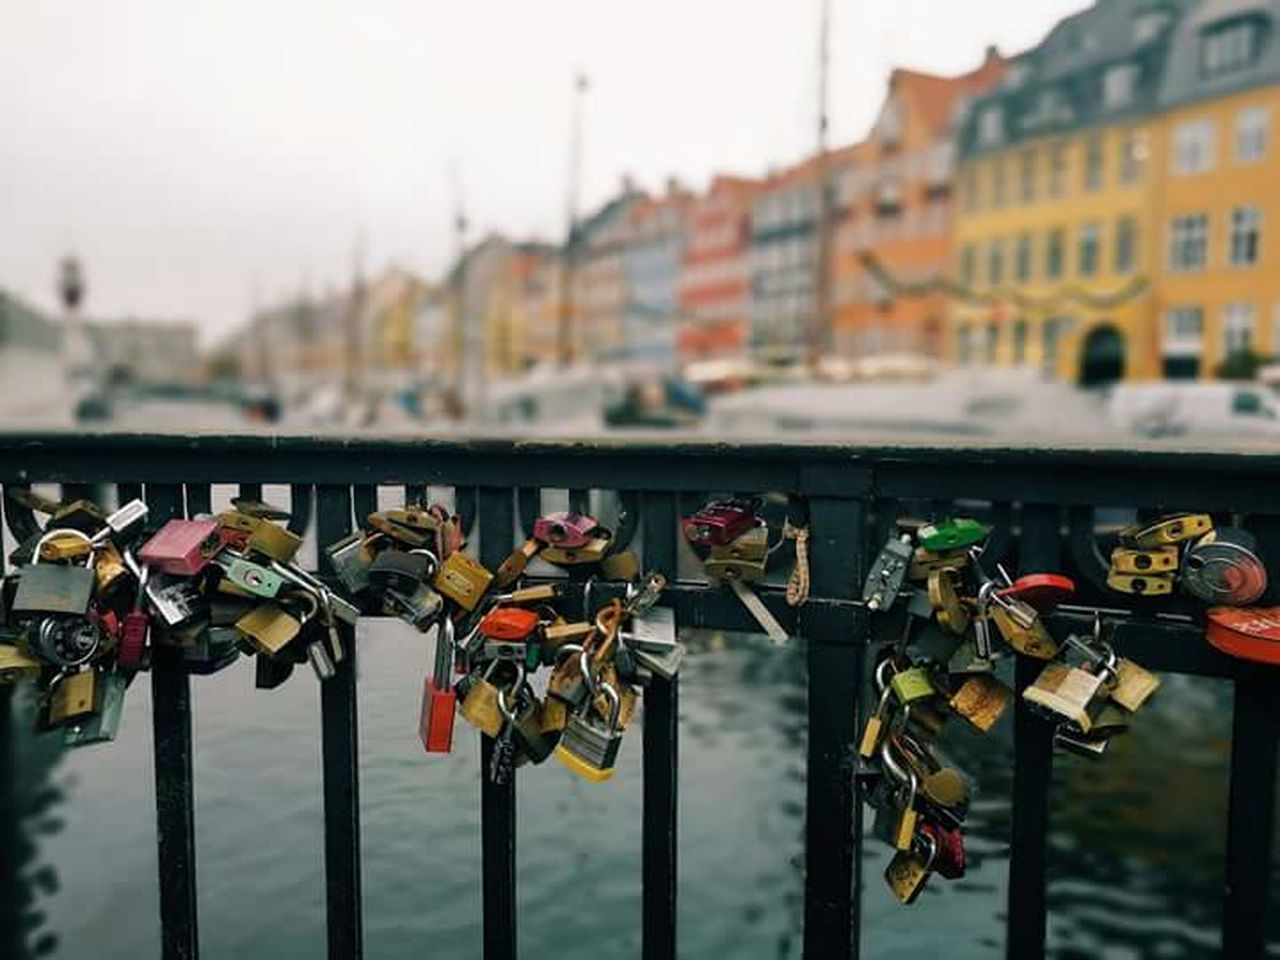 Copenhagen, Denmark Love Locks Bridge Bridge View